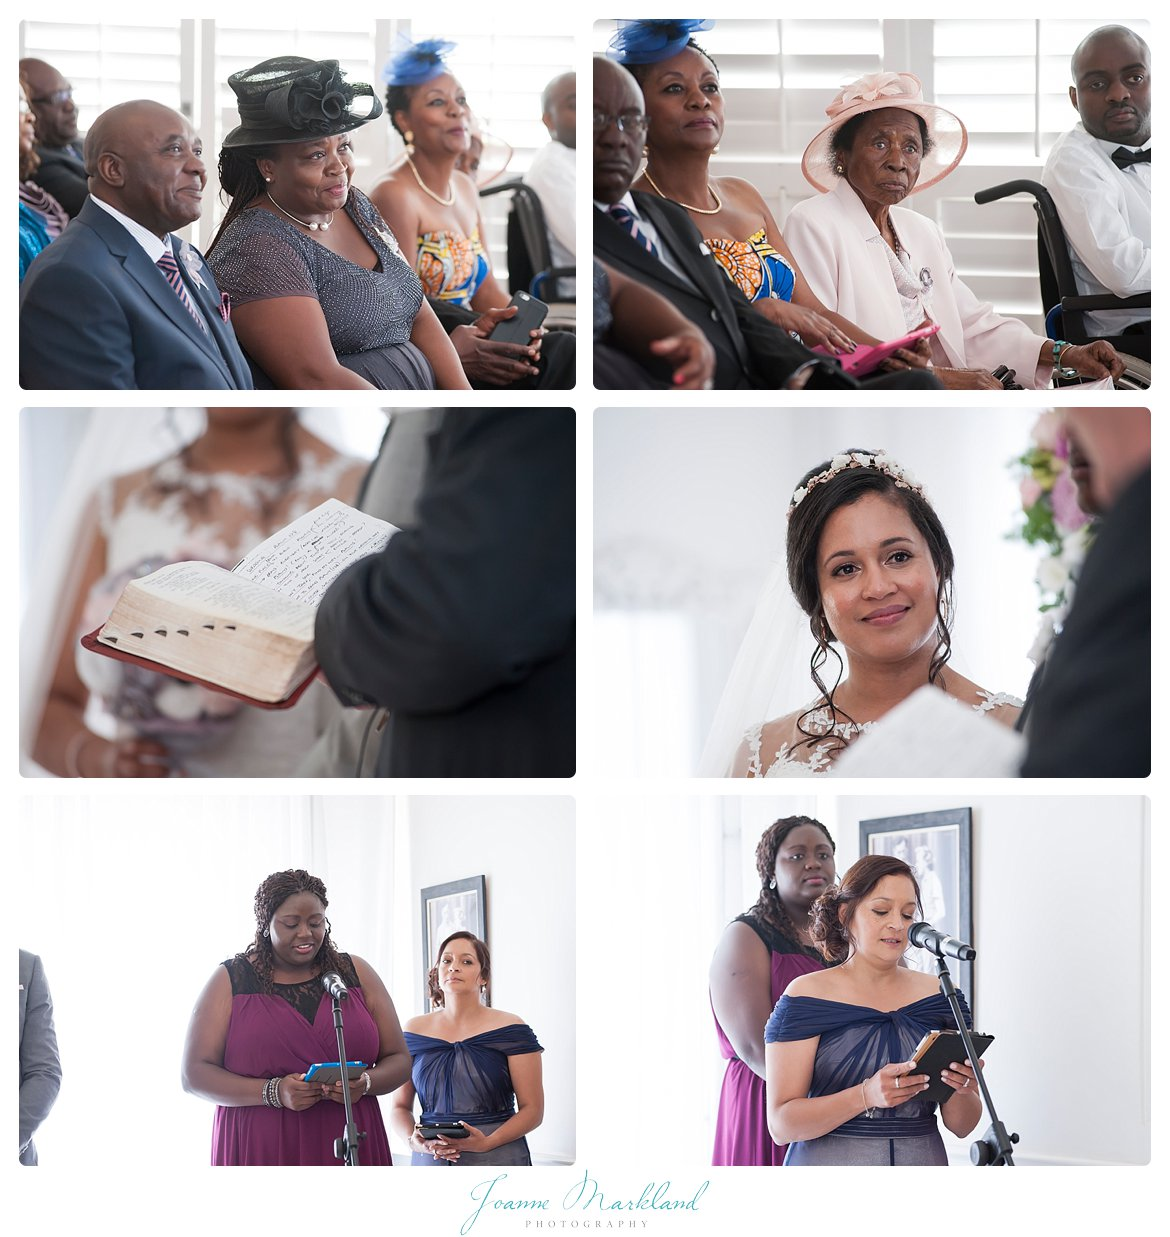 Val_de_vie_wedding_joanne_markland_photography_paarl-028